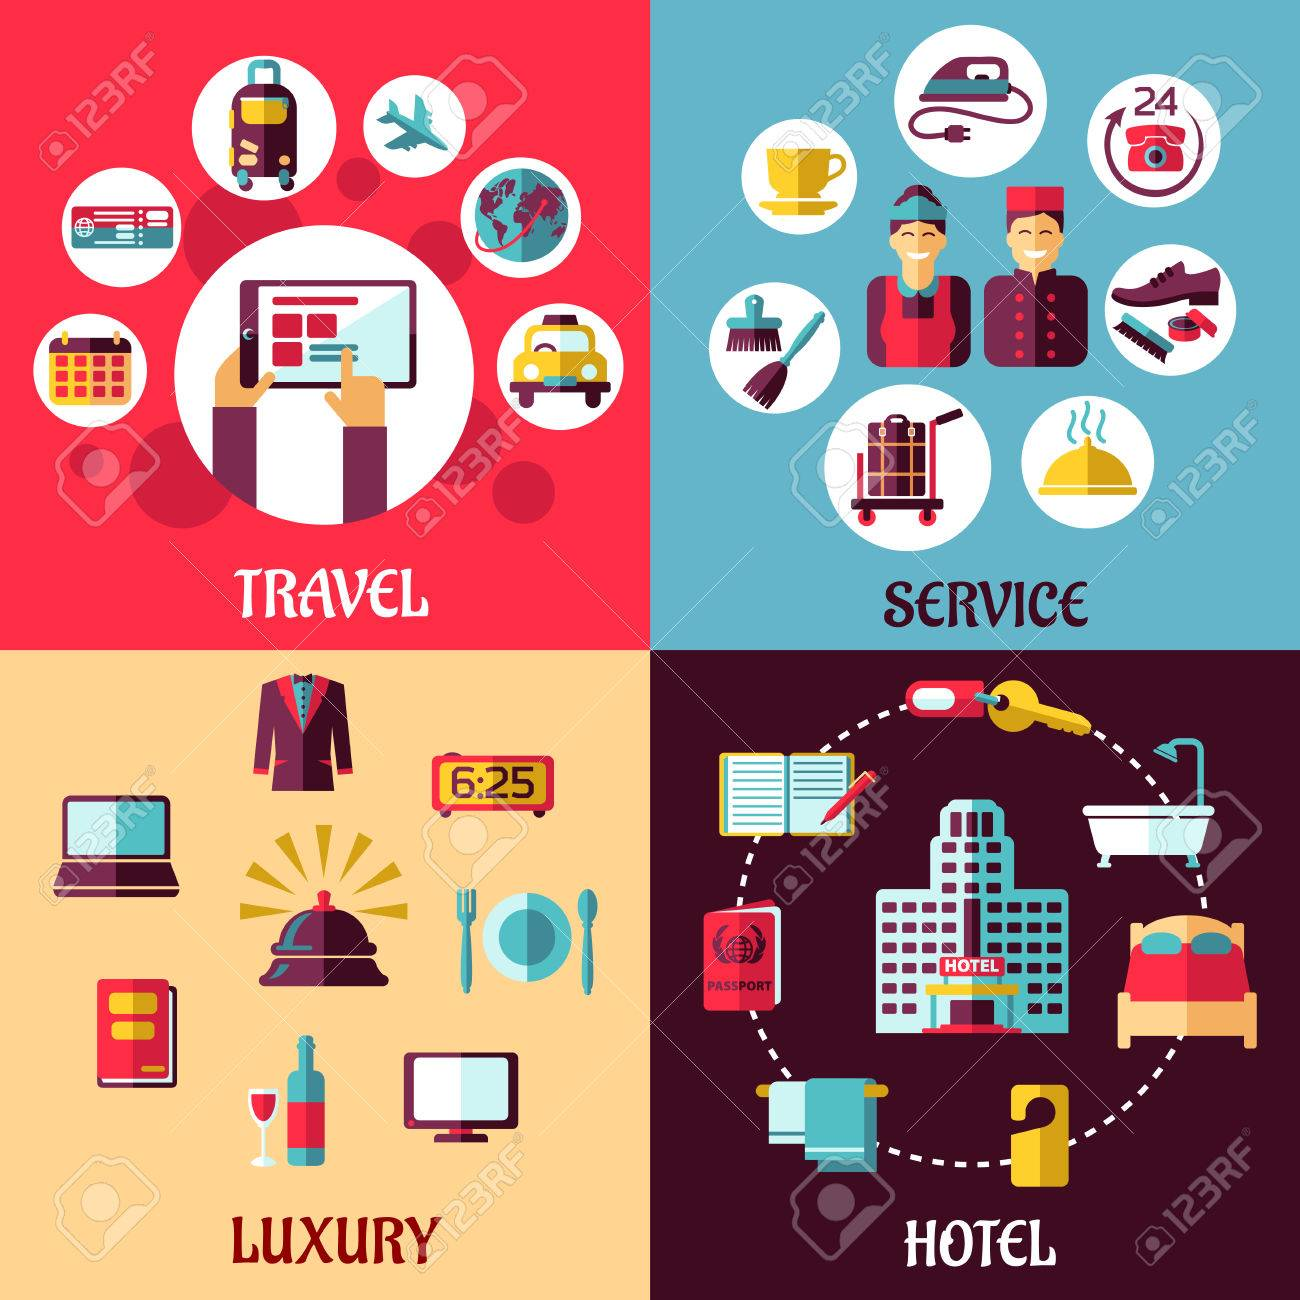 Travel And Services Flat Concept With Icons Depicting Internet Booking Luxury Hotel Room